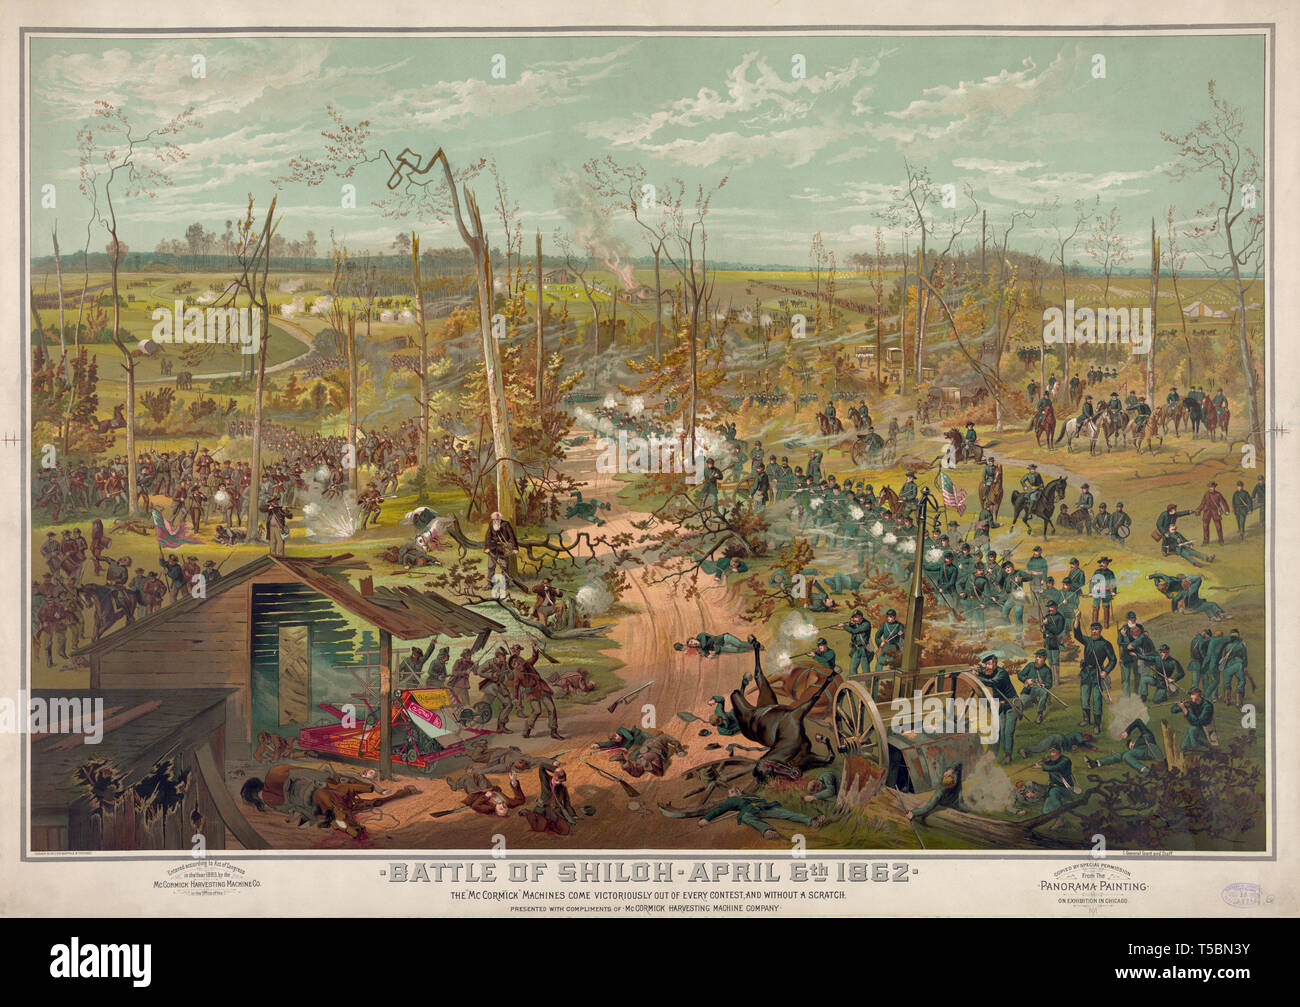 Battle of Shiloh, April 6th 1862, McCormick Harvester & Twine Binder Advertisement from a Théophile Poilpot Panorama Painting, Lithograph, Cosack & Co., 1885 - Stock Image